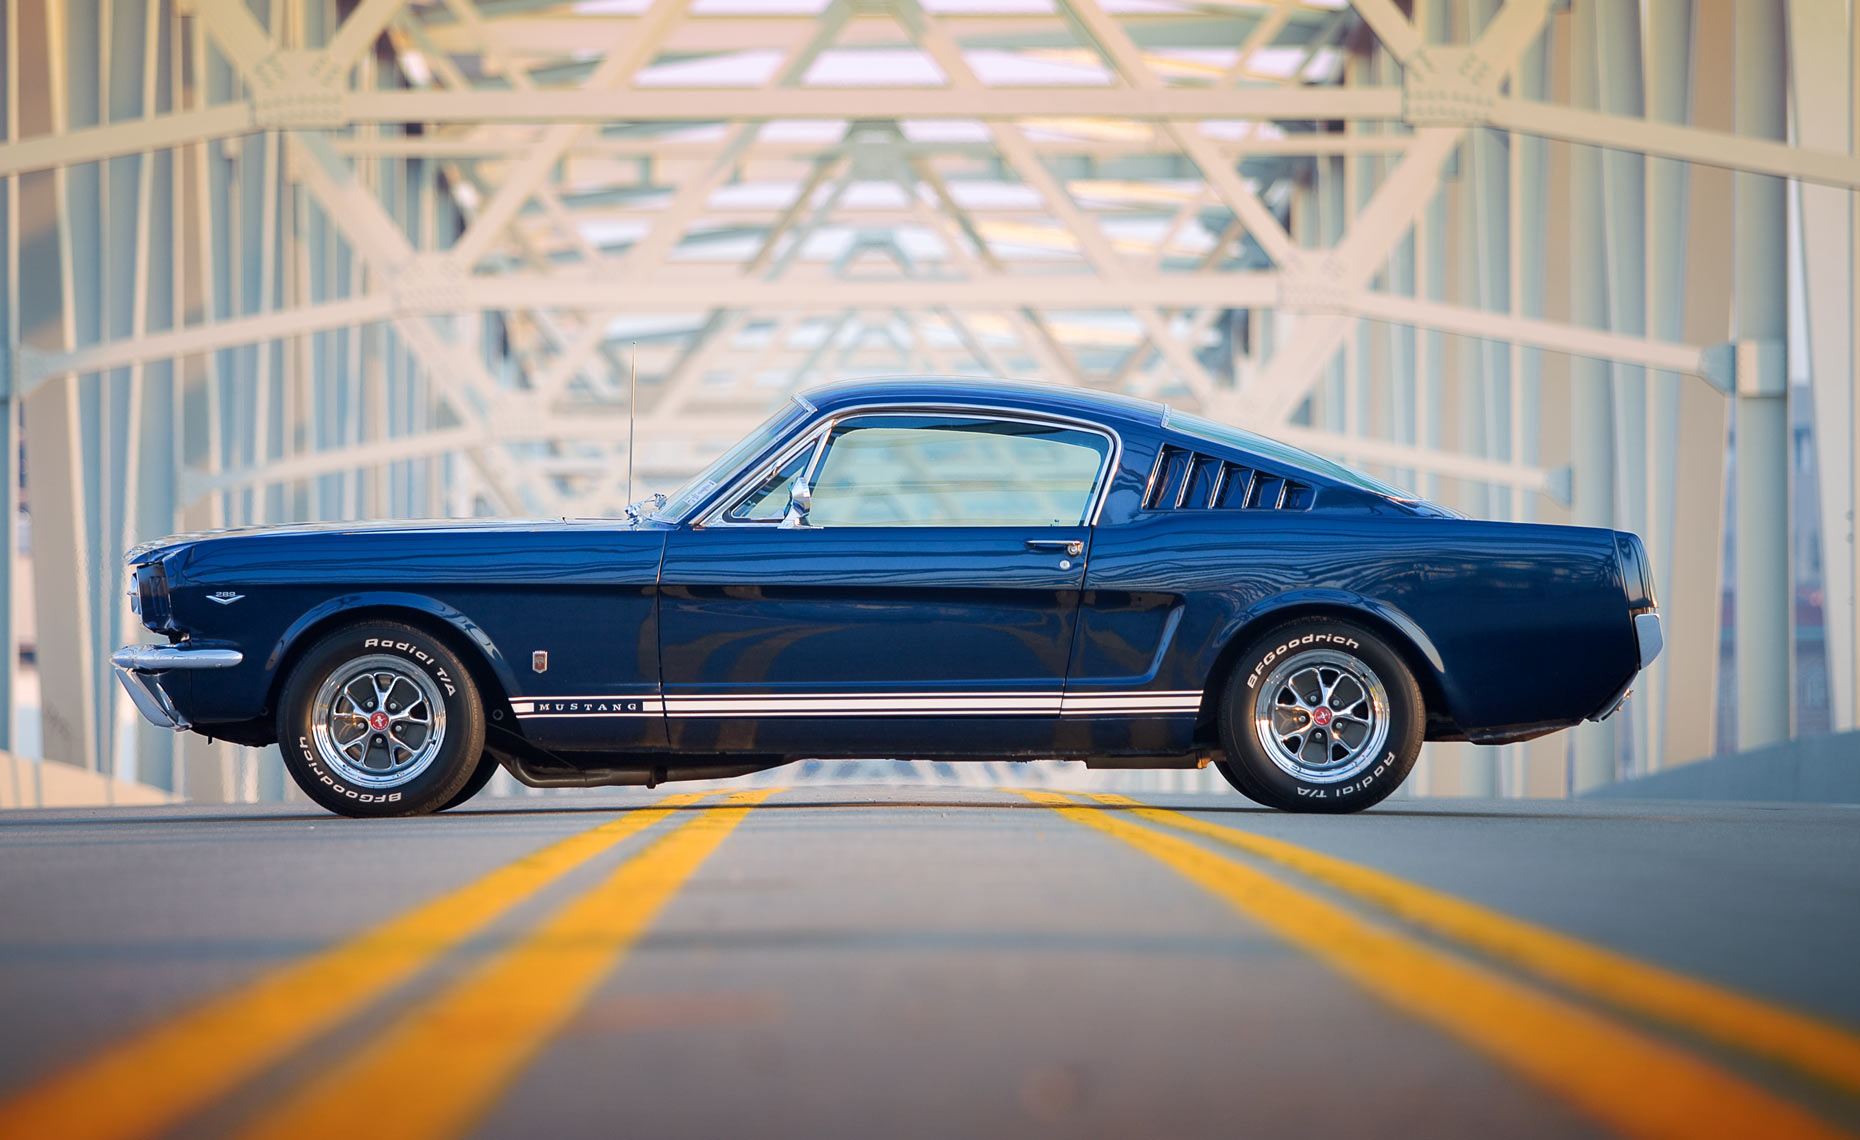 blue-mustang-on-bridge-side